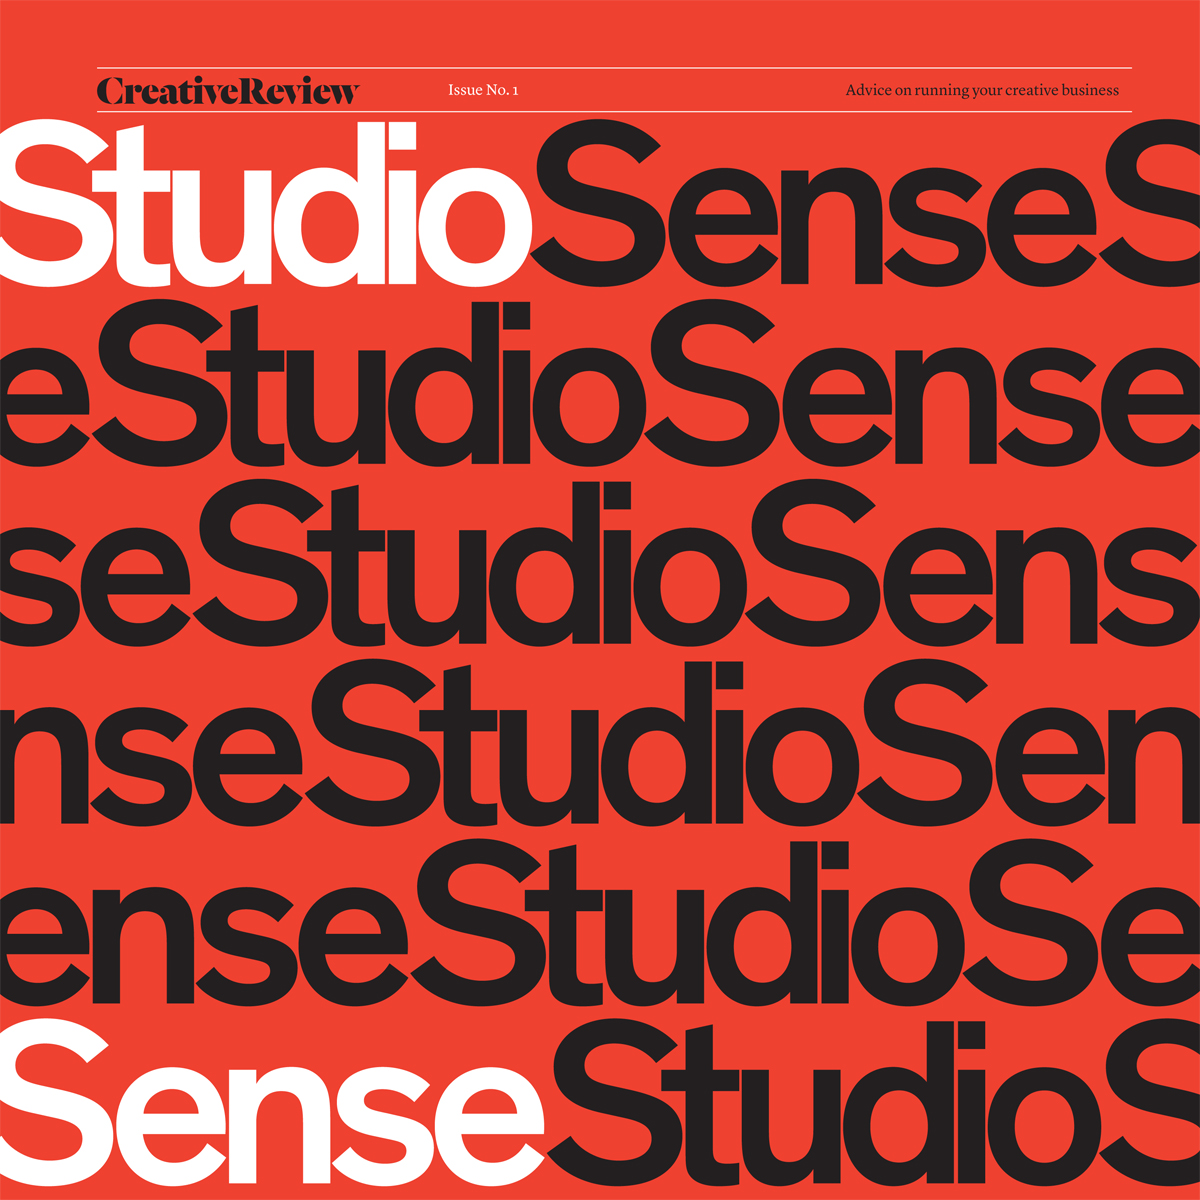 Creative Review Studio Sense supplement